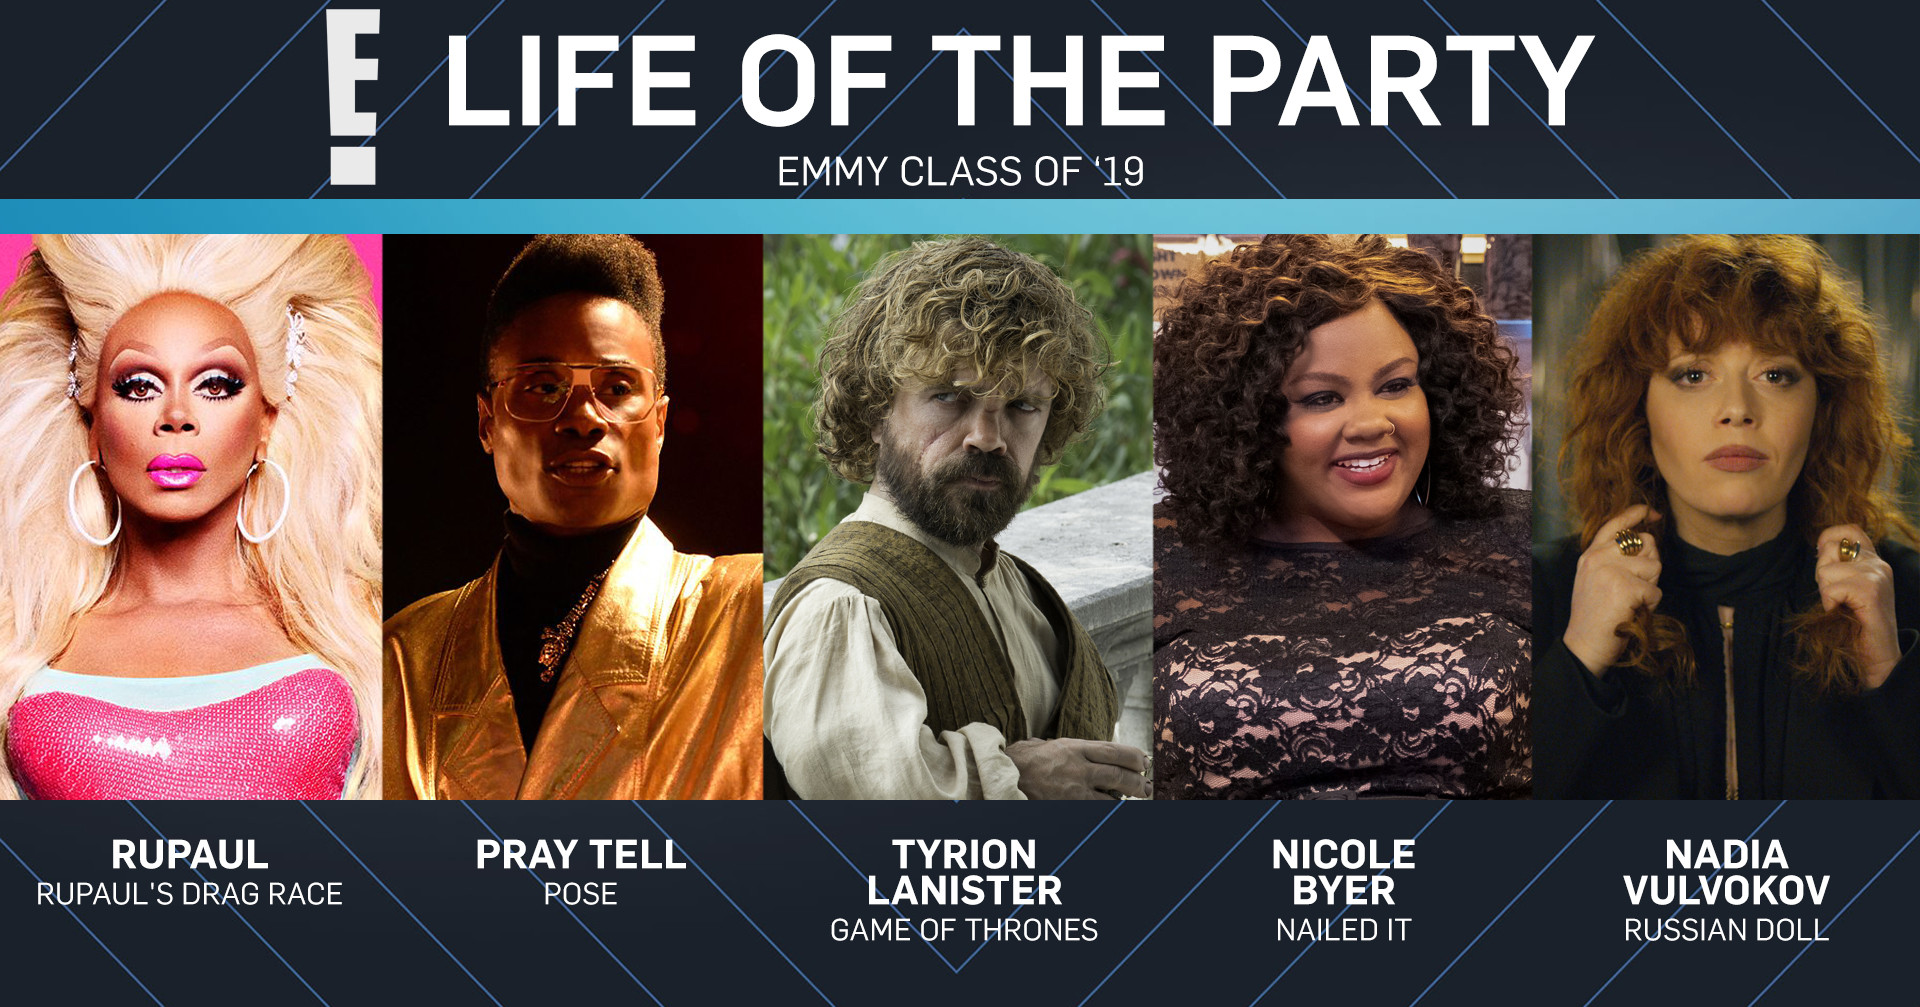 Emmy Class of 2019, Life of the Party